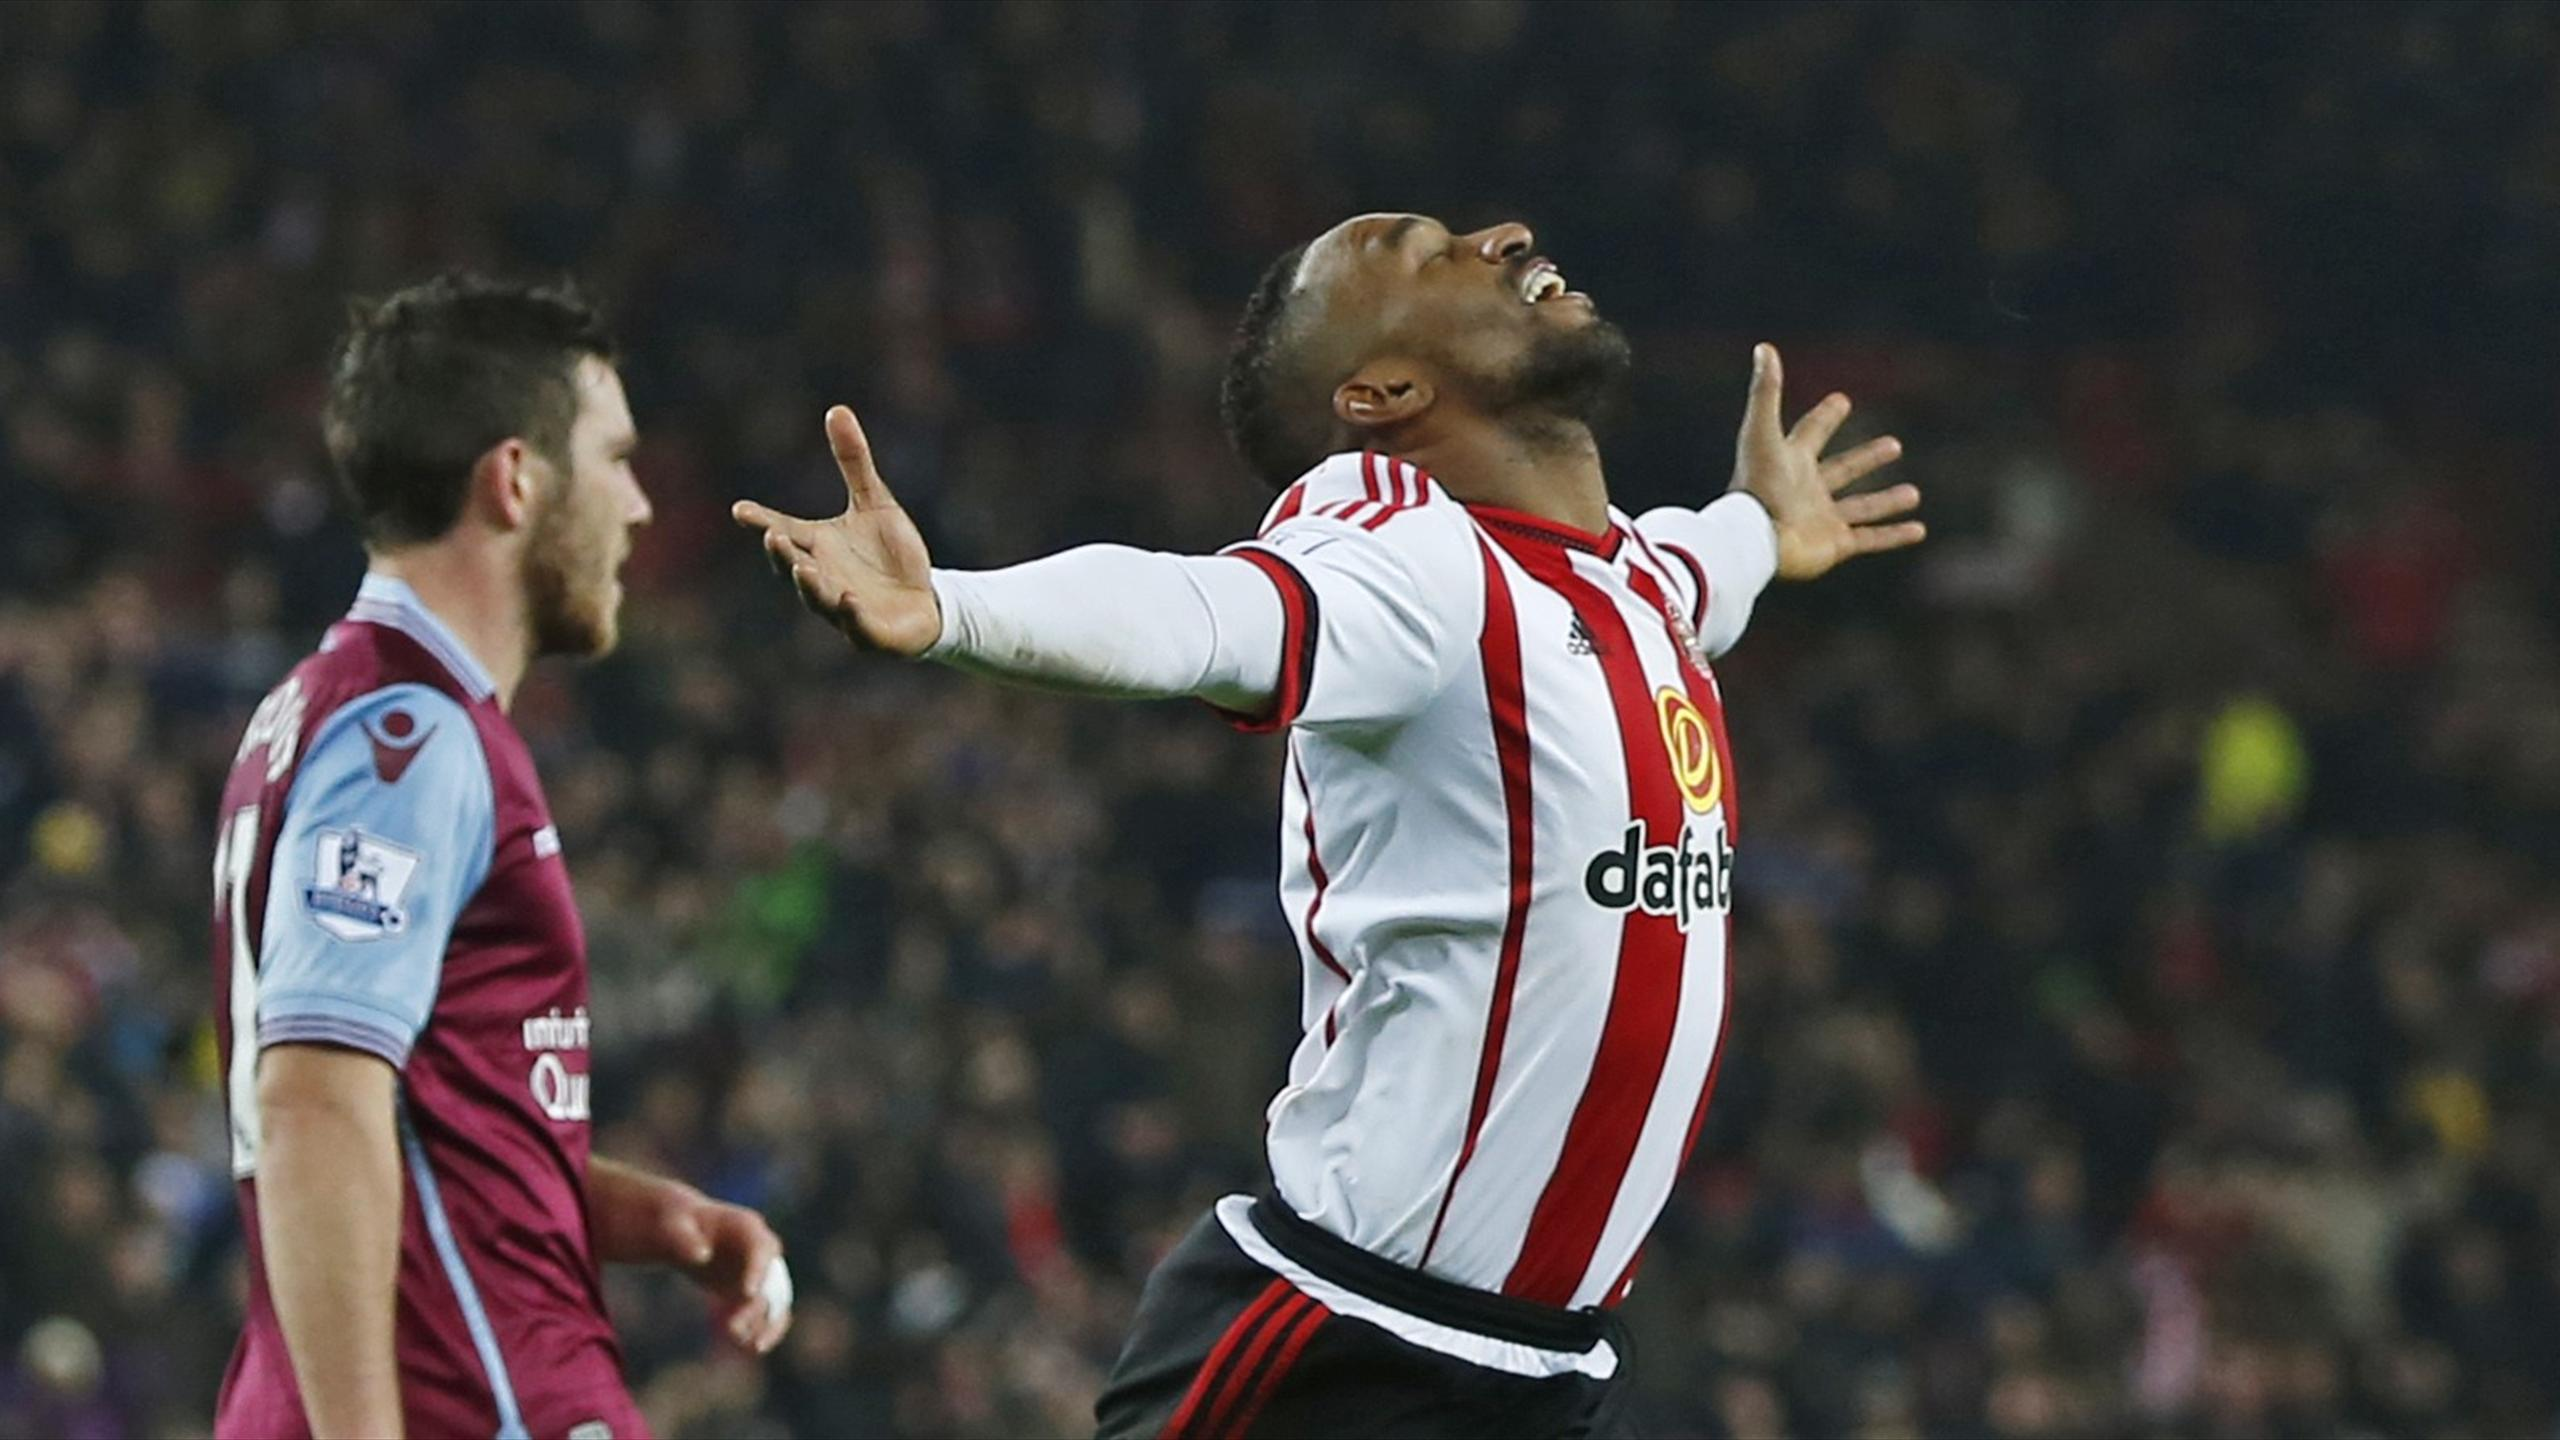 Jermain Defoe celebrates scoring for Sunderland against Aston Villa